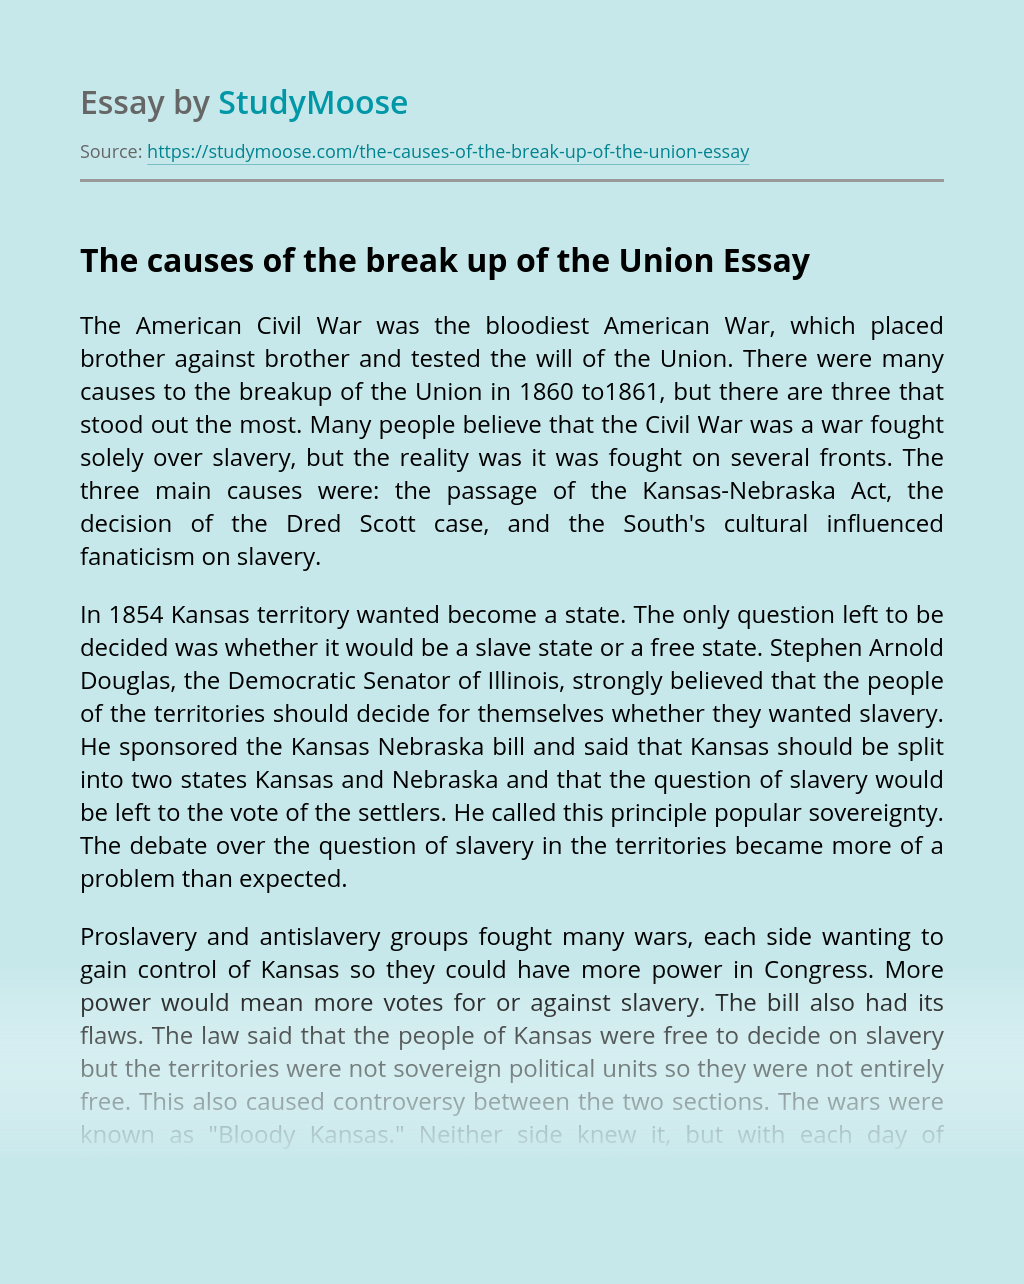 The causes of the break up of the Union